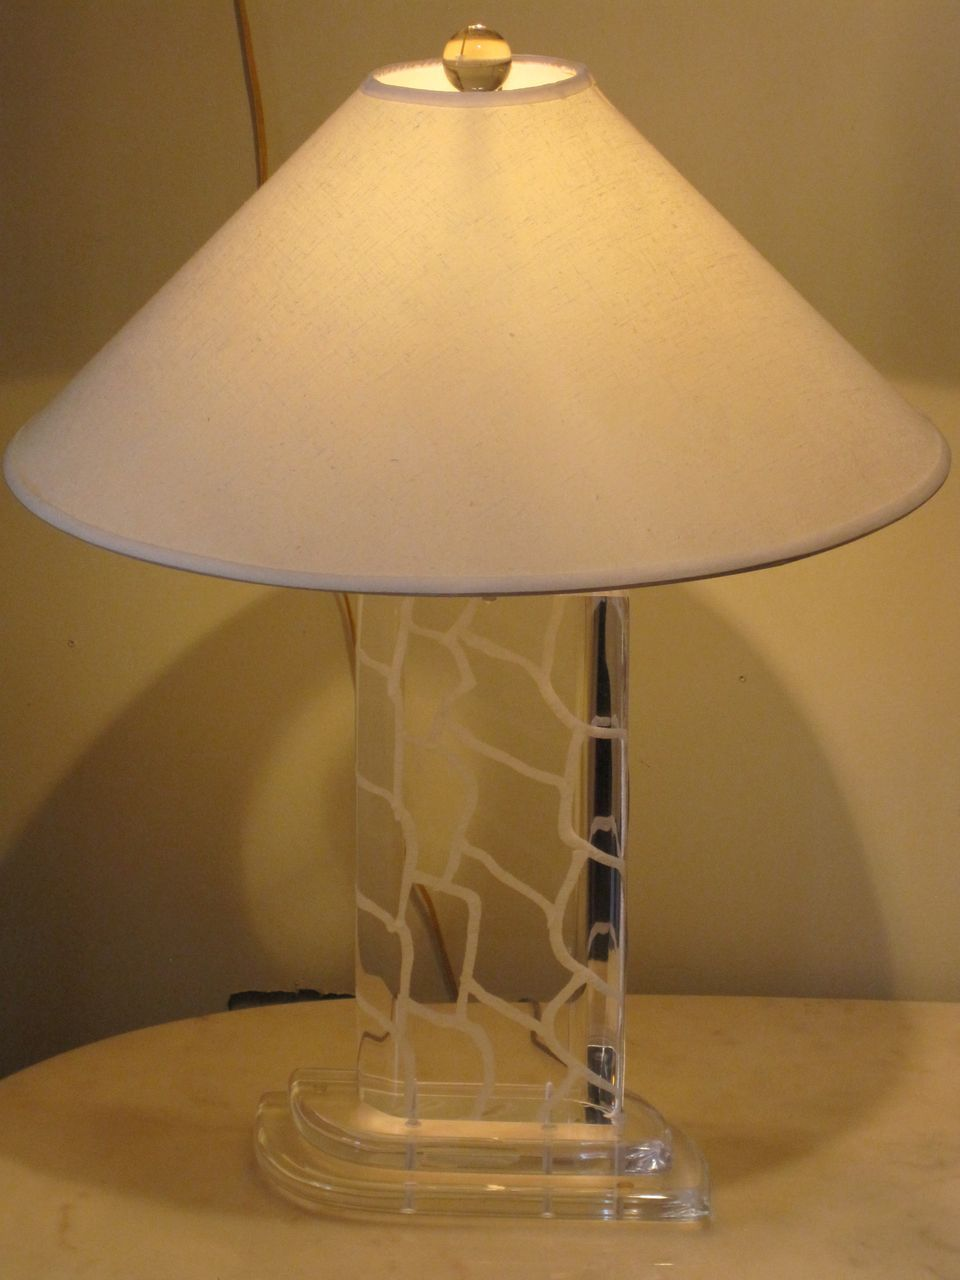 Giraffe lamp shade - Roll Over Large Image To Magnify Click Large Image To Zoom